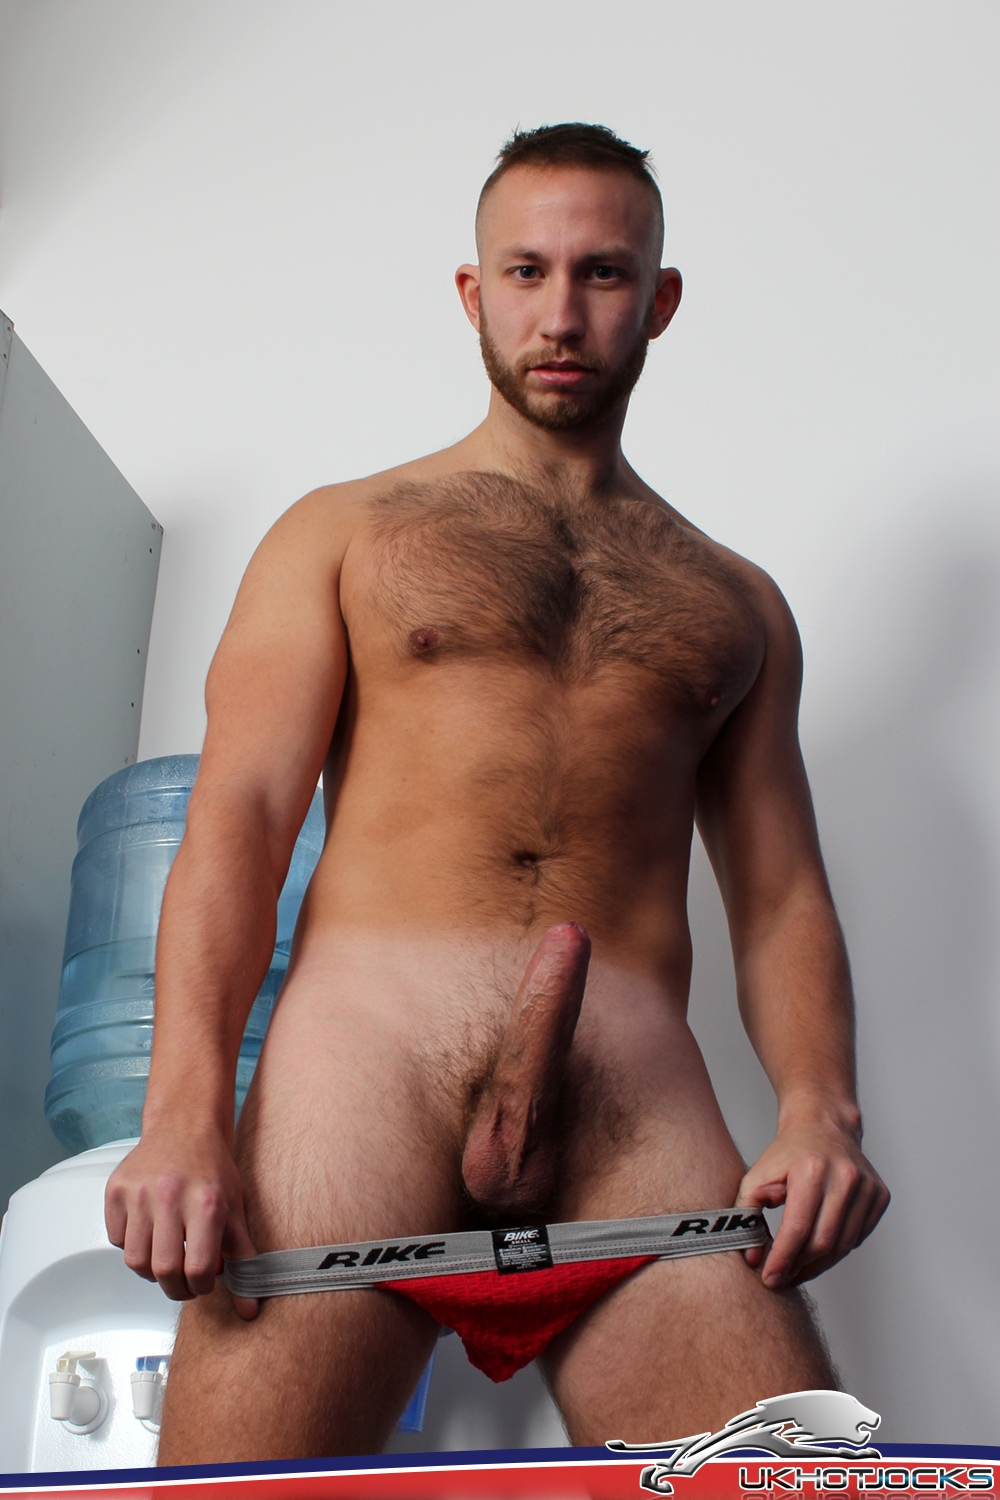 Click here to download this full length big hairy uncut cock jerk off video and hundreds more amateur gay porn videos...